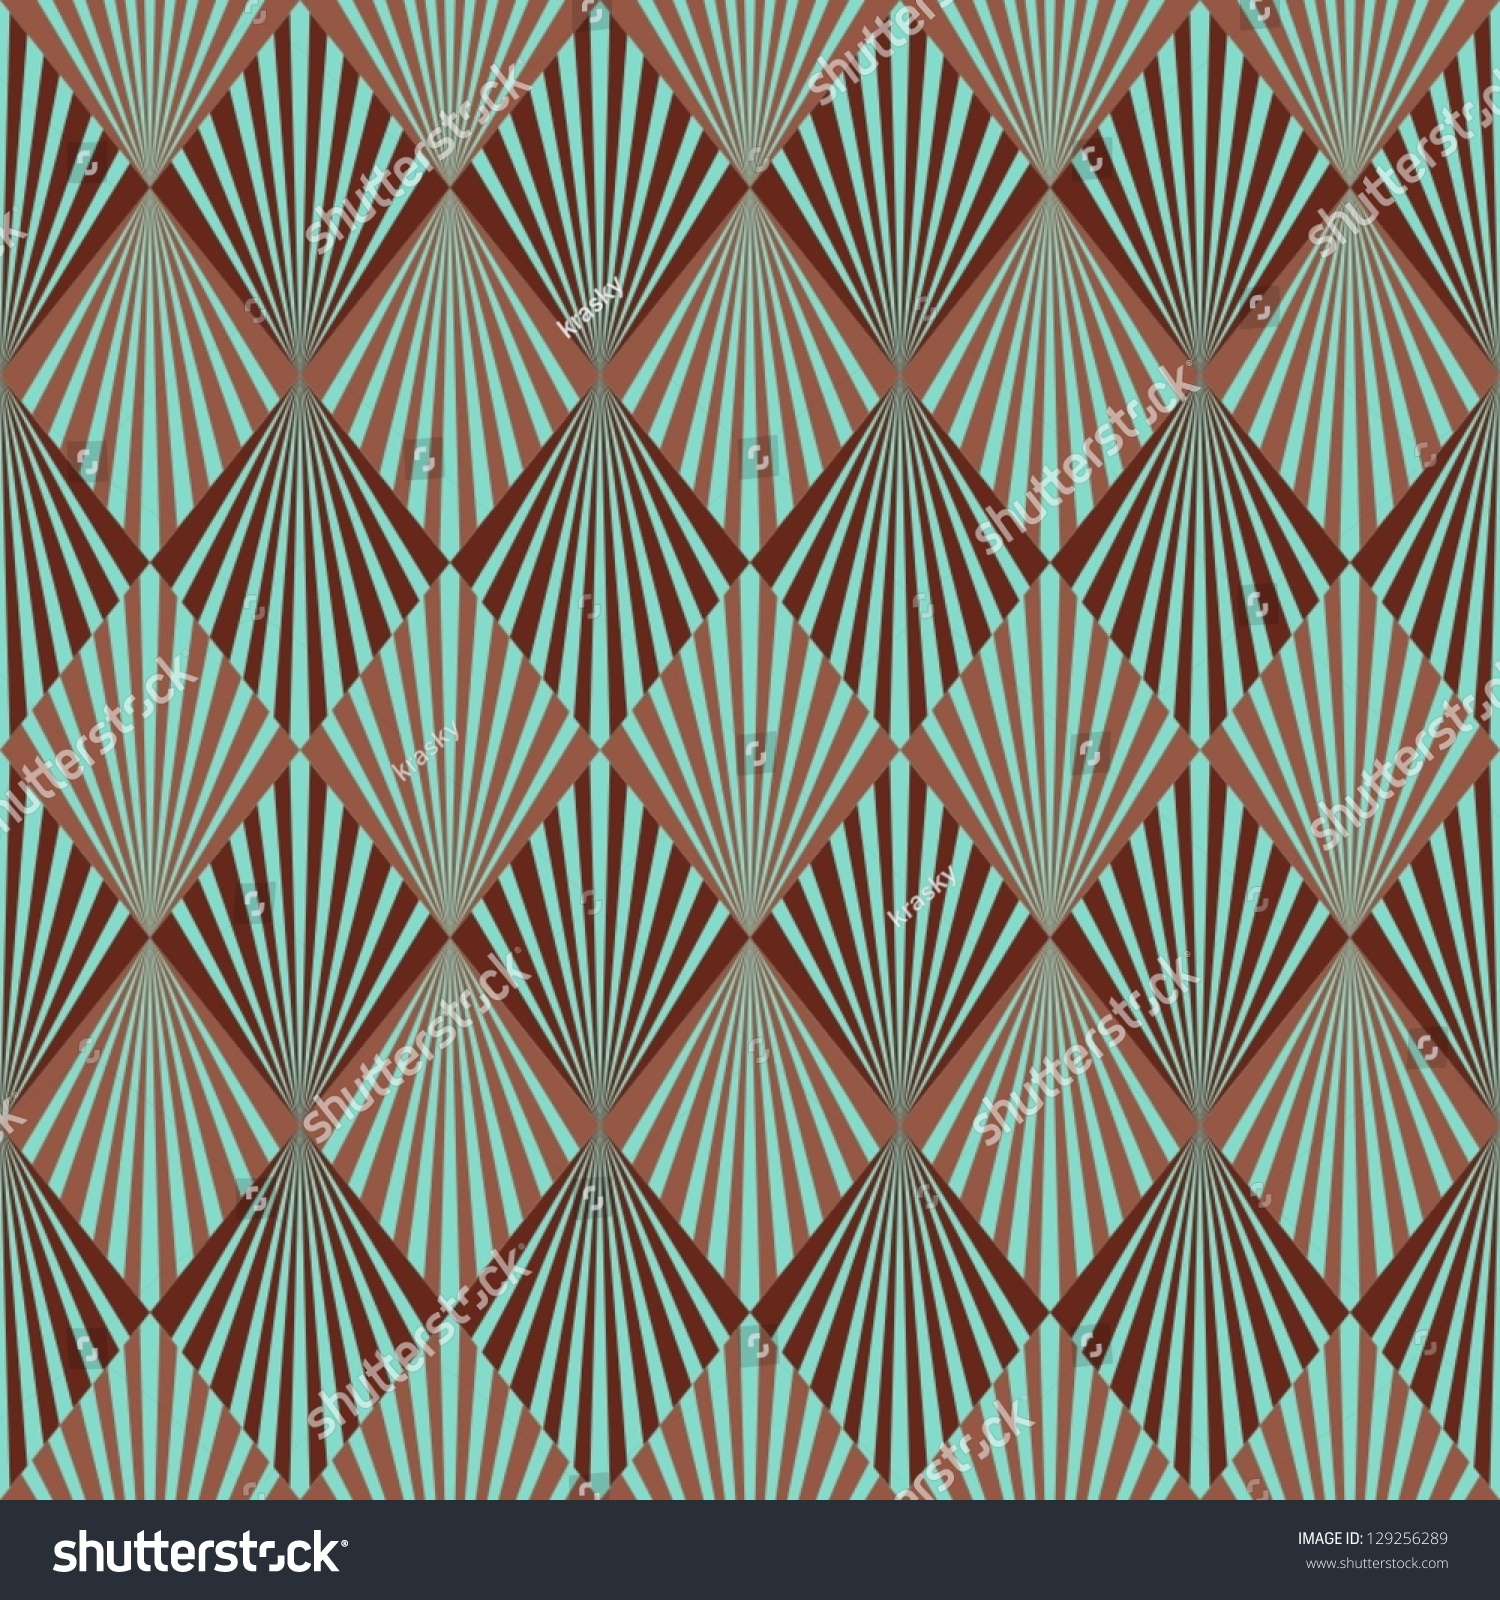 art deco style seamless pattern texture stock vector 129256289 shutterstock. Black Bedroom Furniture Sets. Home Design Ideas